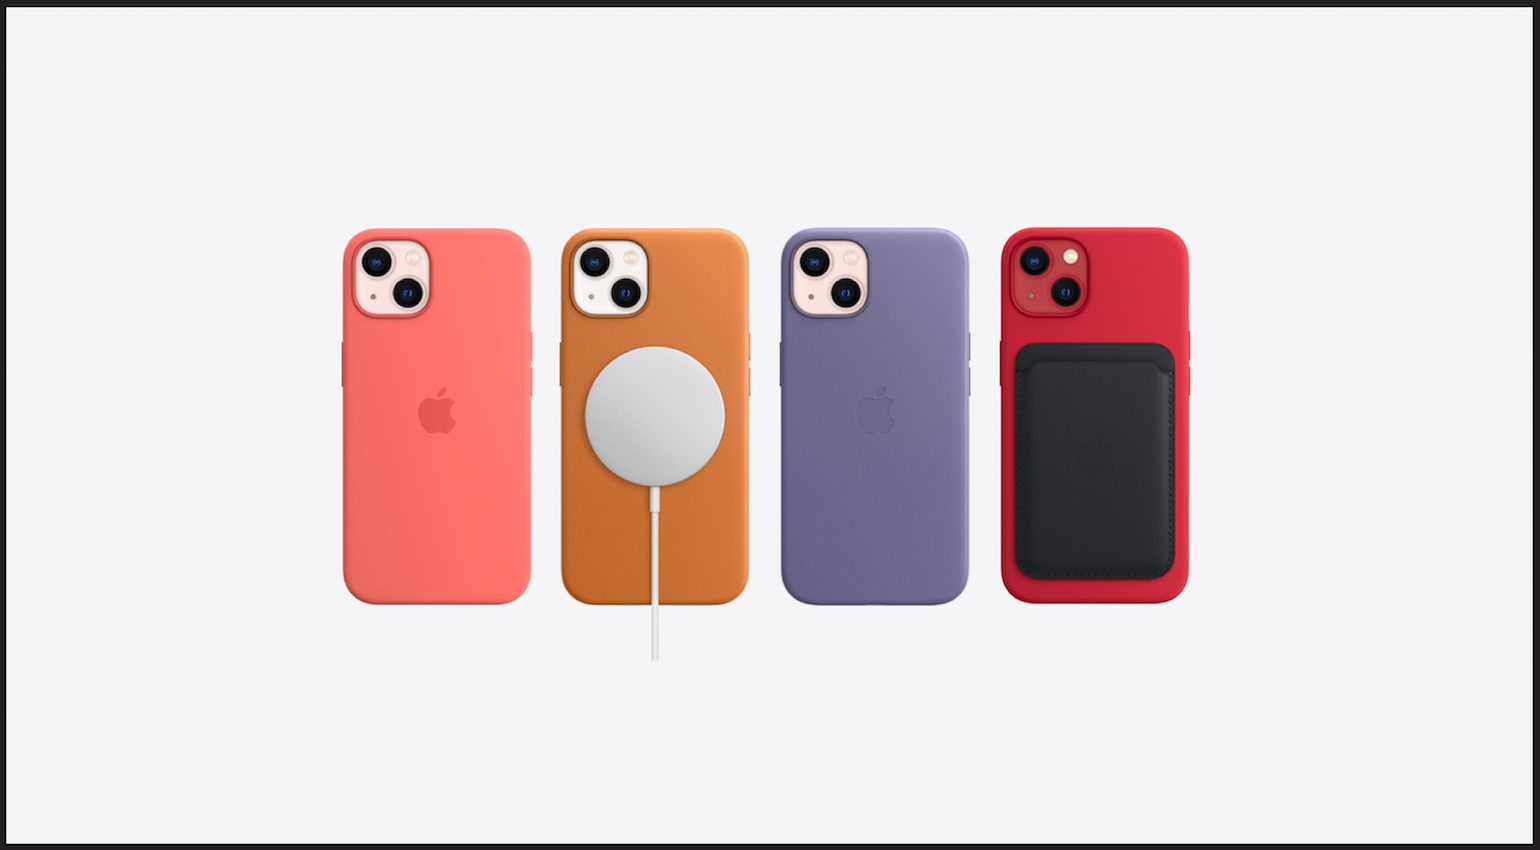 The iPhone 13 range of accessories